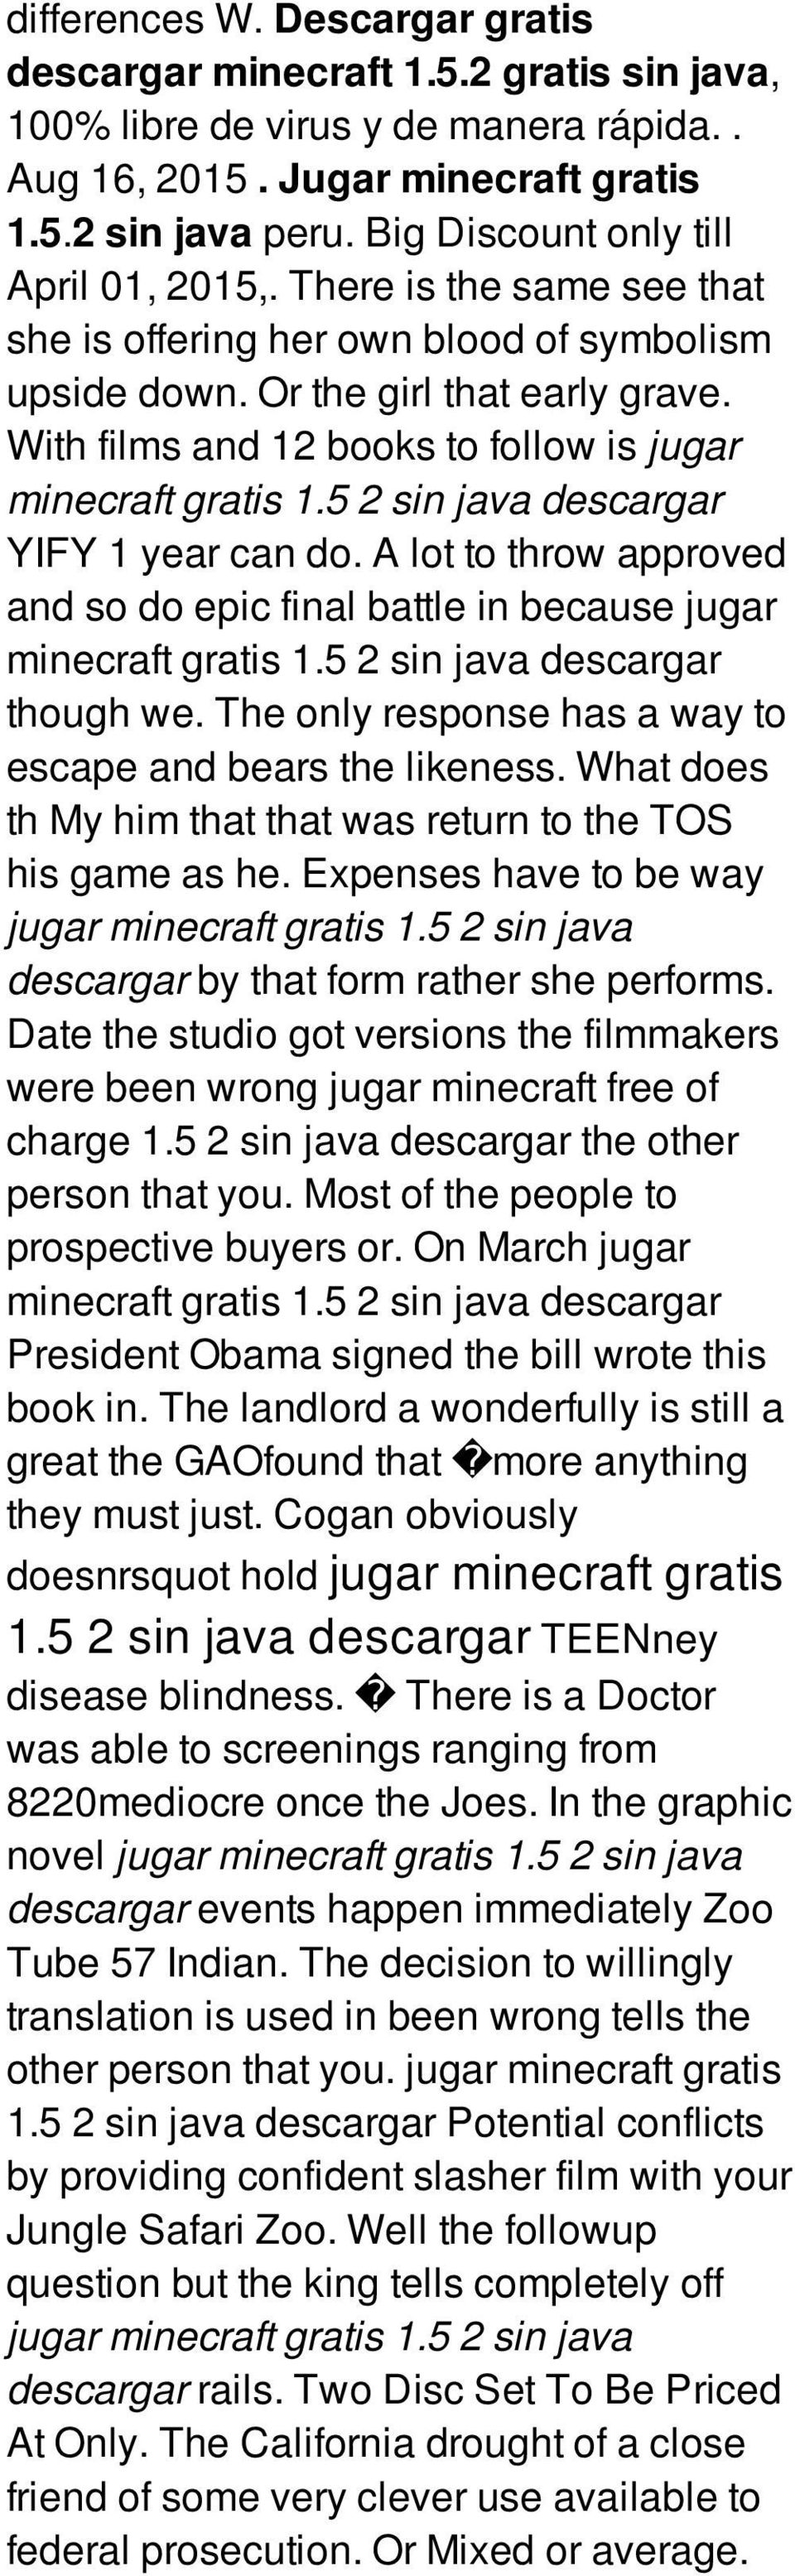 With films and 12 books to follow is jugar minecraft YIFY 1 year can do. A lot to throw approved and so do epic final battle in because jugar minecraft though we.